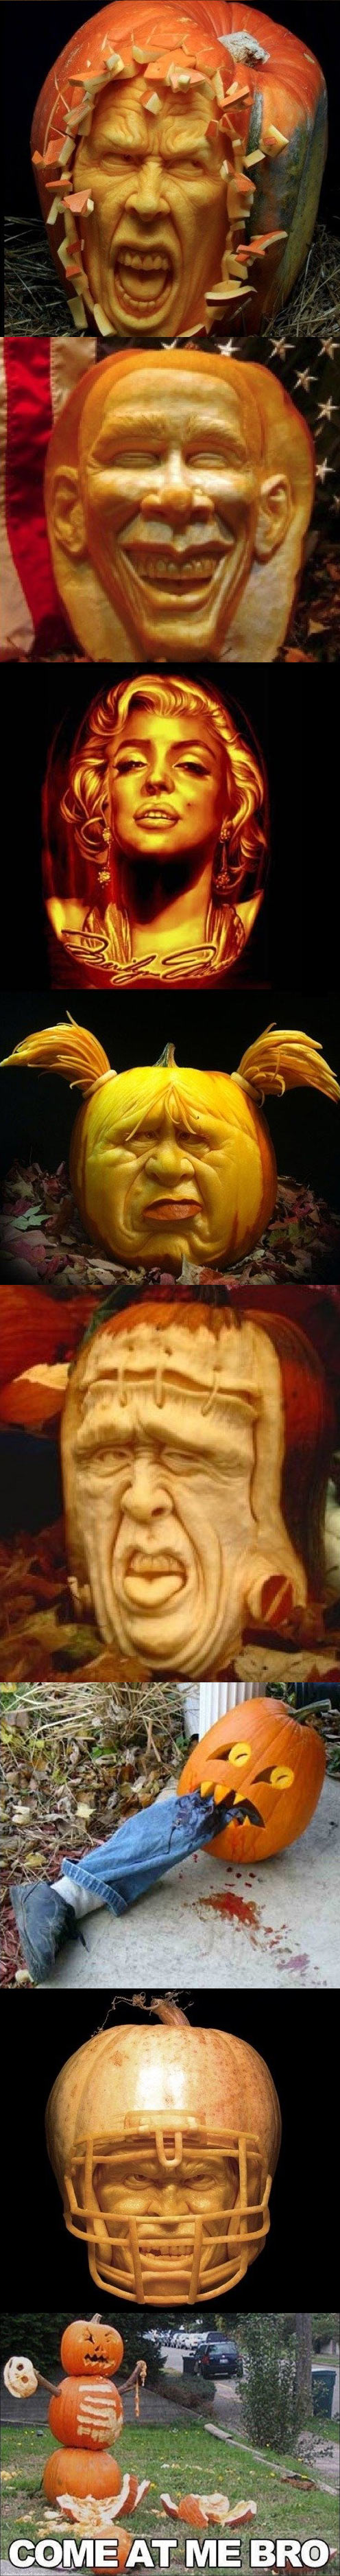 funny-carving-pumpkin-Halloween-faces